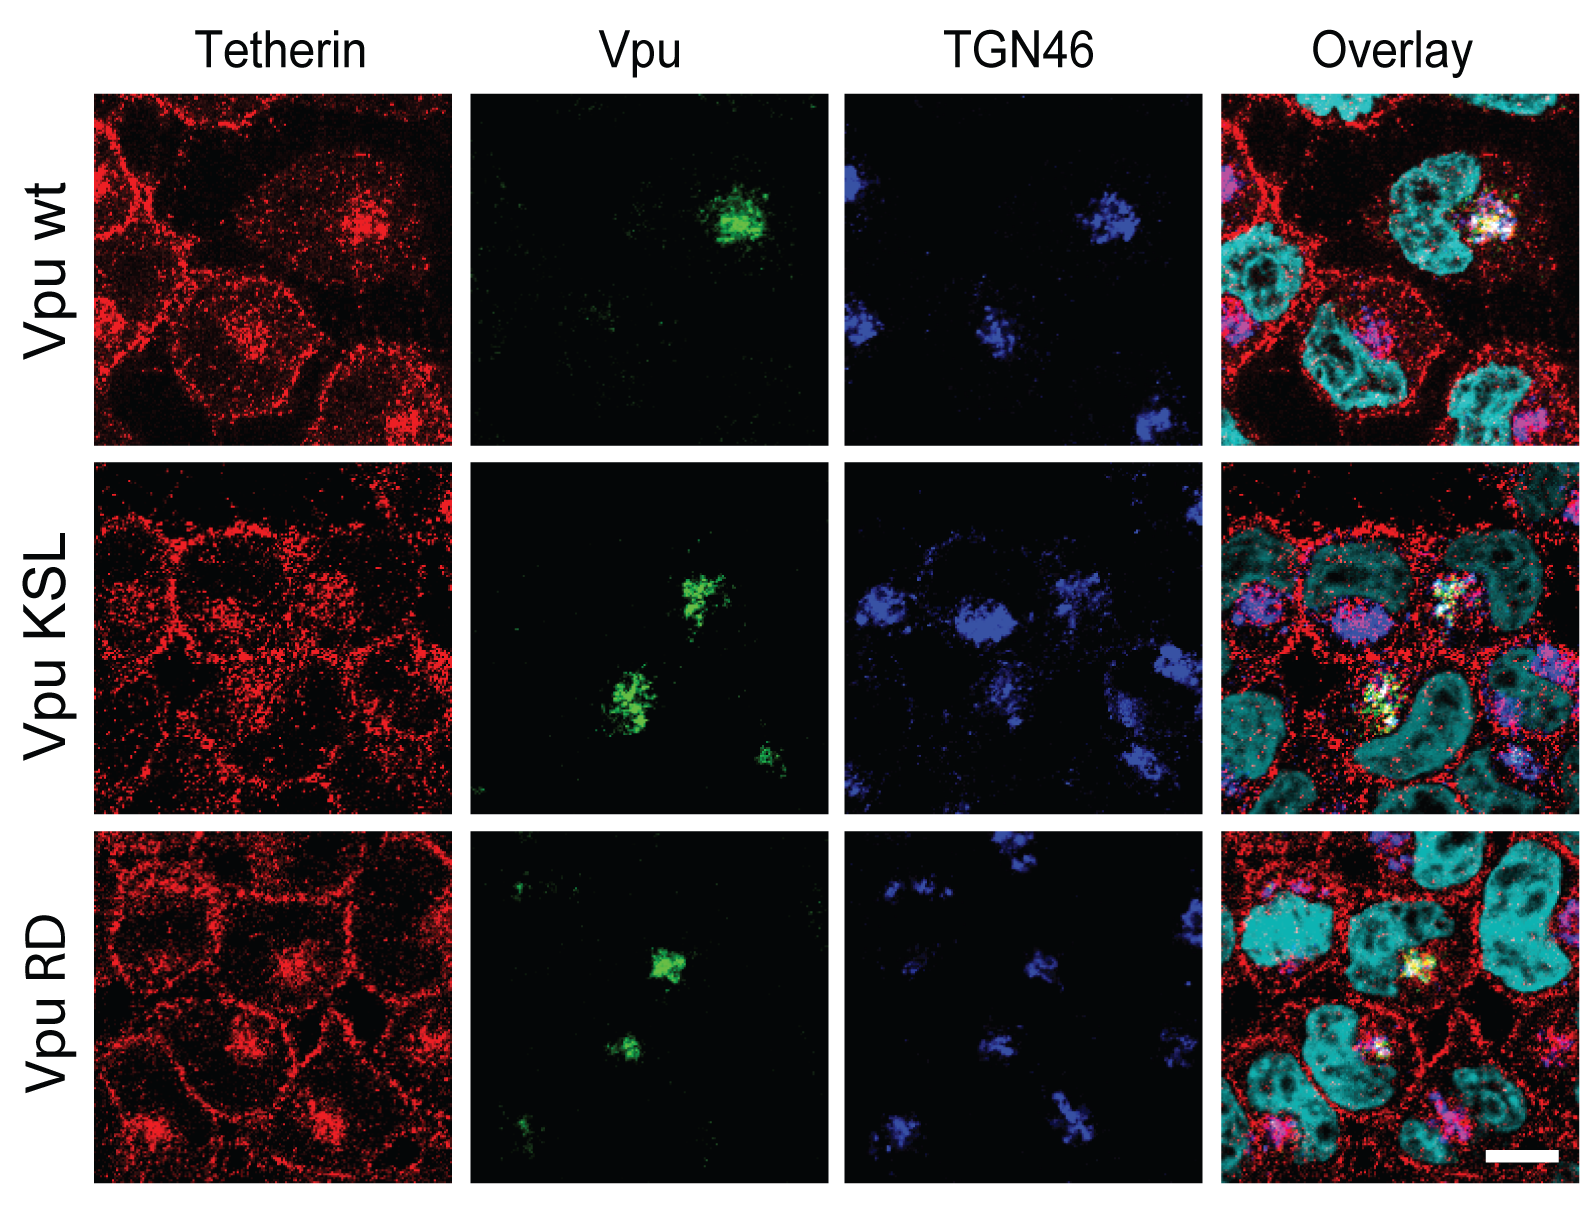 Re-localization of Tetherin in the TGN requires the association of Vpu to the restriction factor.